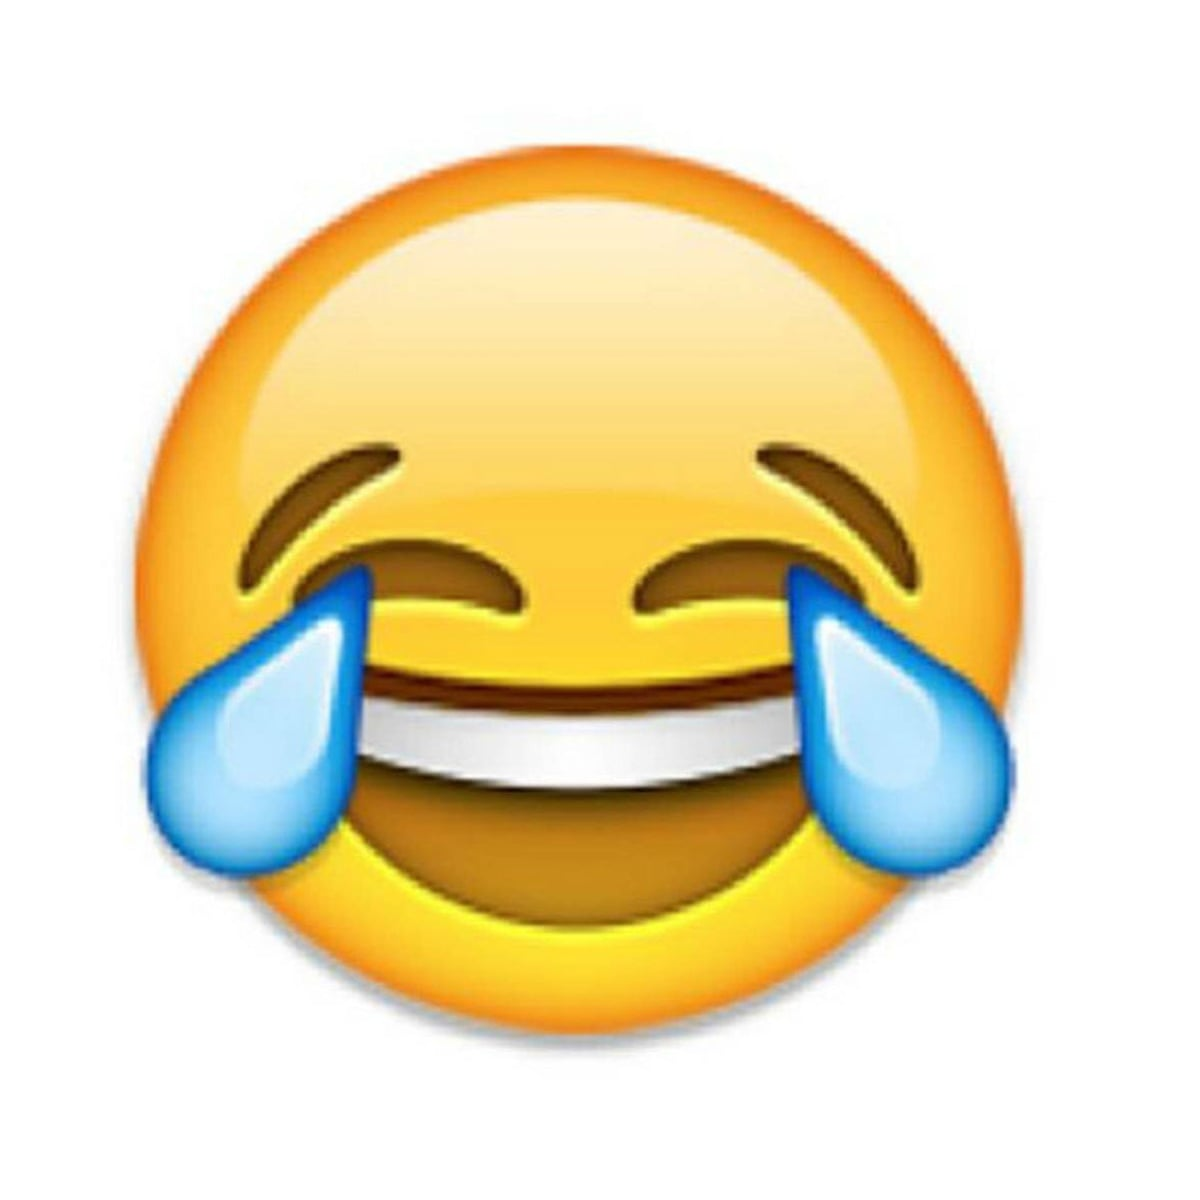 The 'tears of joy' emoji is the worst of all – it's used to gloat about  human suffering | Abi Wilkinson | The Guardian